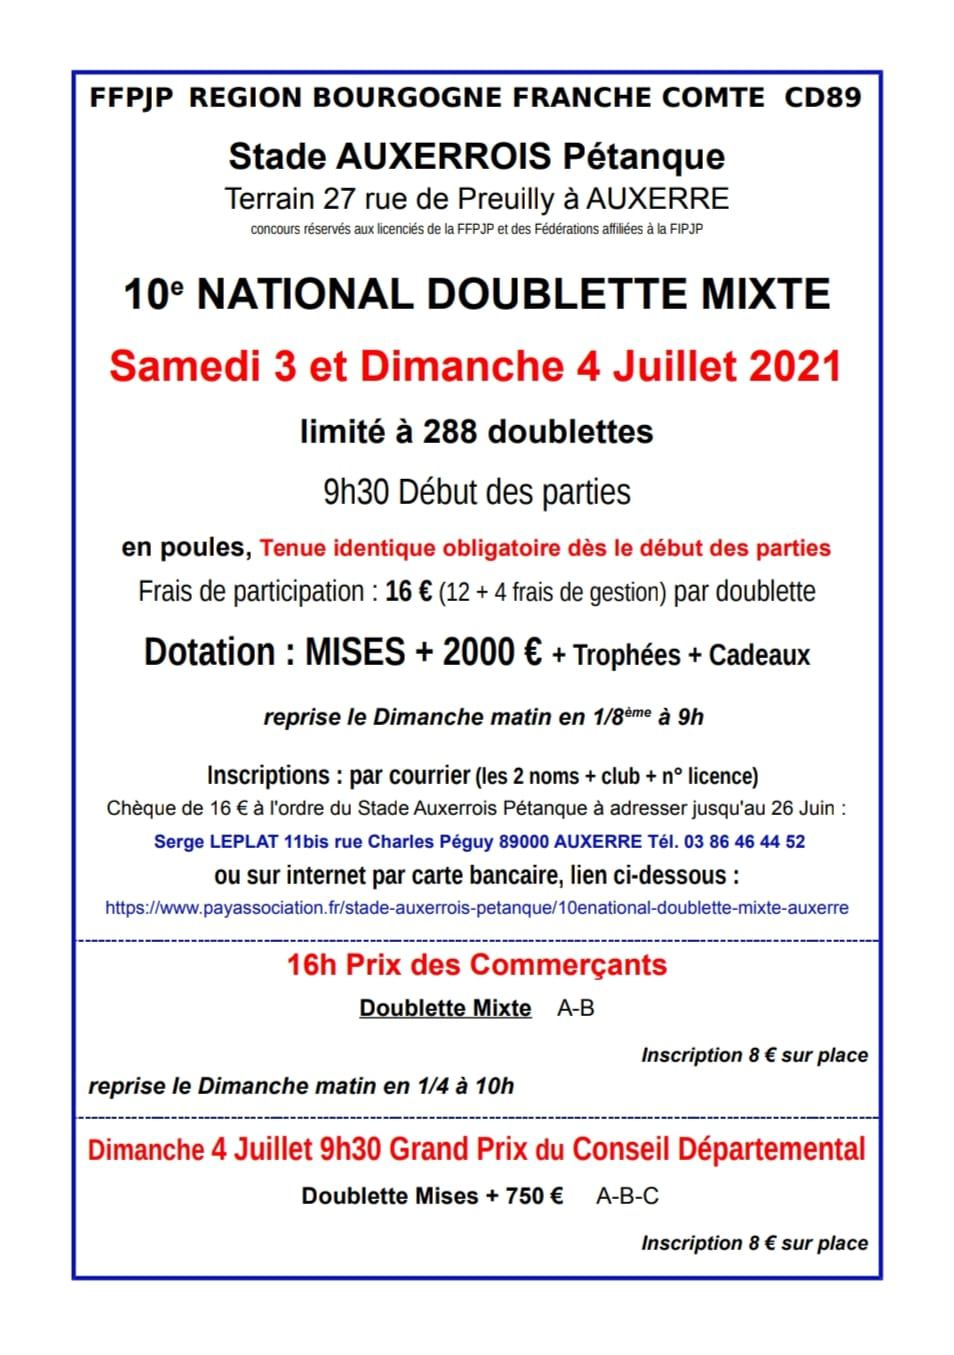 NATIONAL DOUBLETTE MIXTE 2021 : affiche et inscription